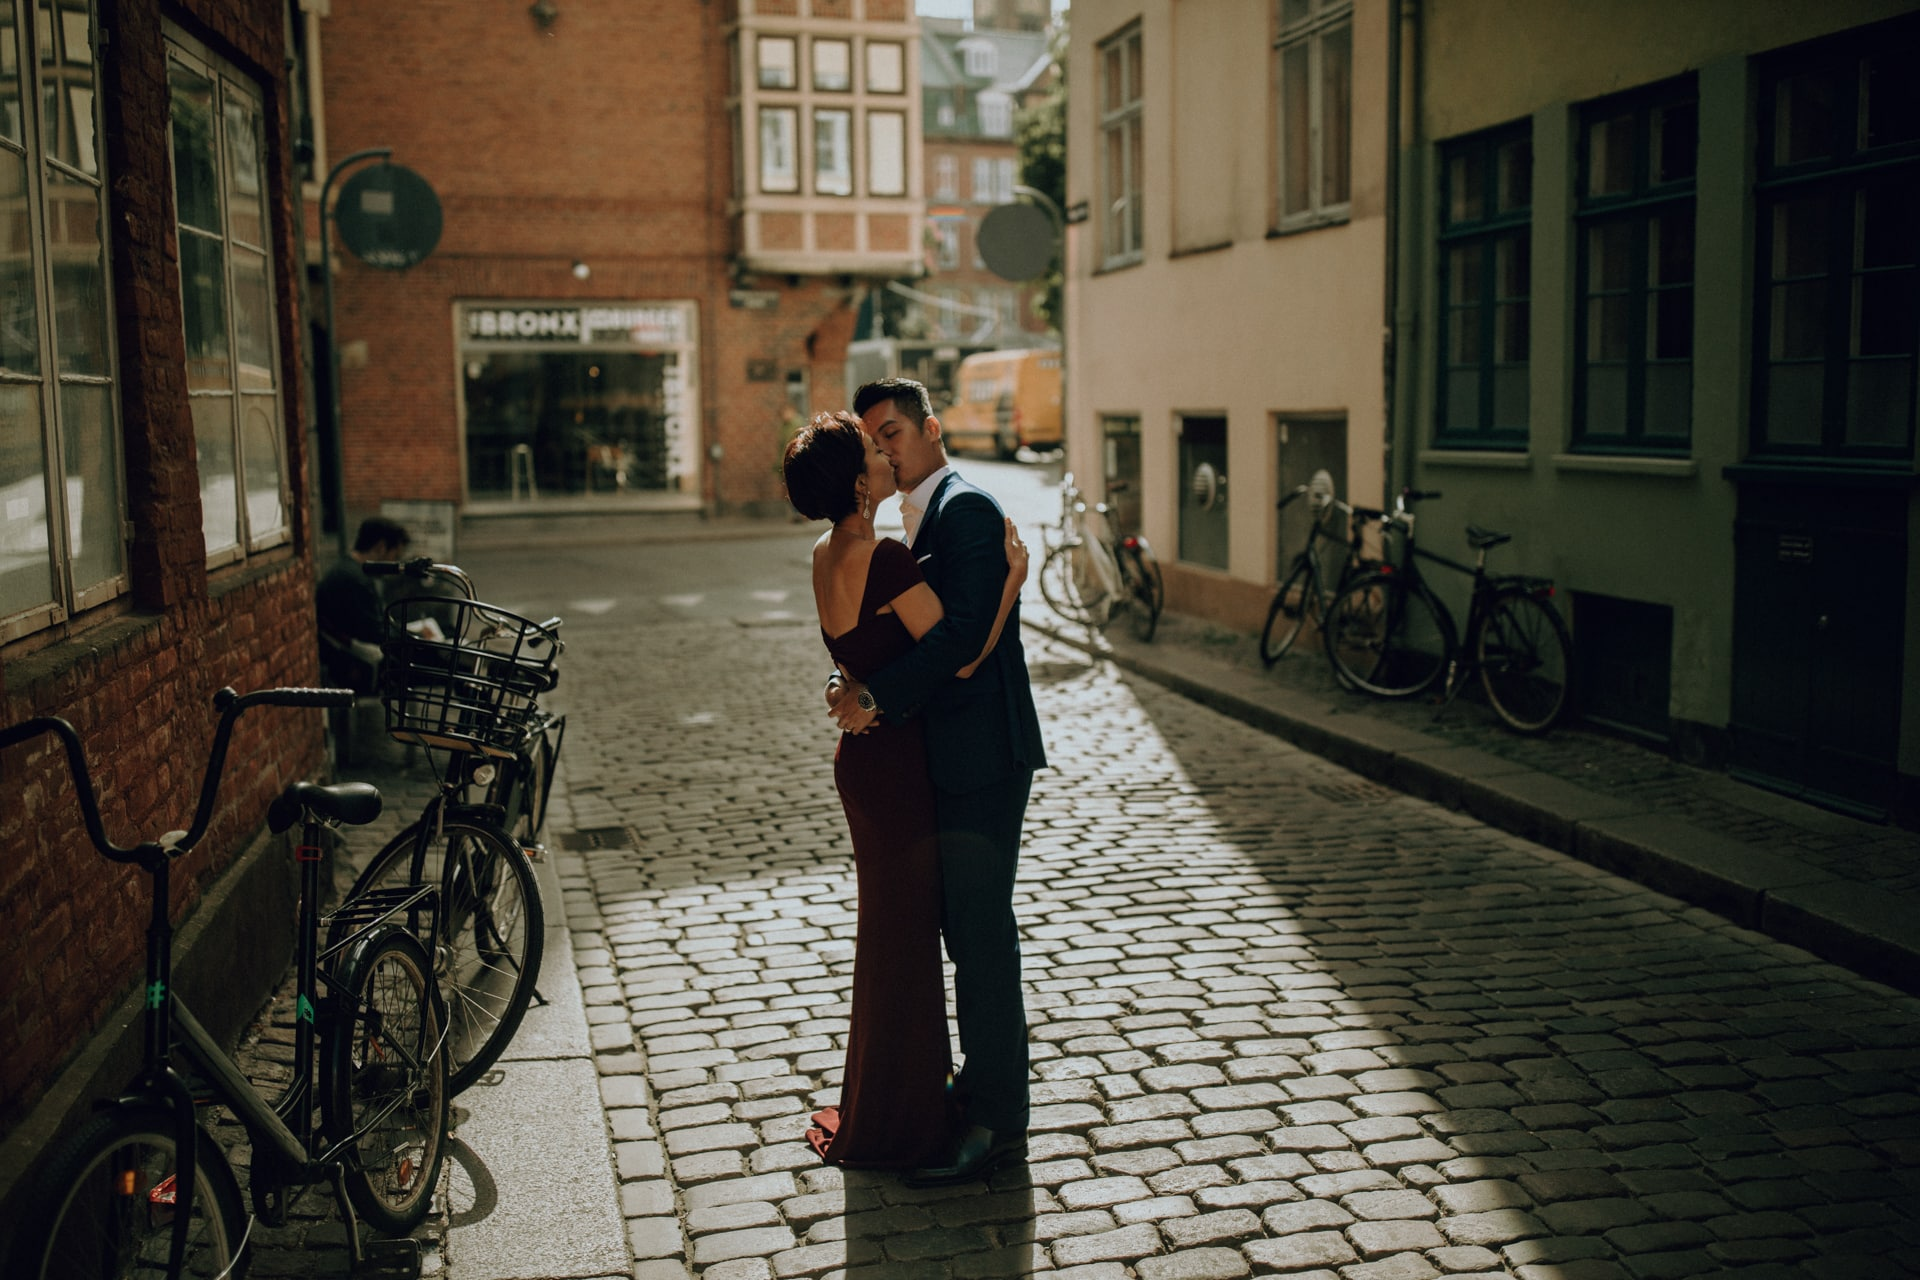 The wedding couple is kissing each other in the streets of Copenhagen.